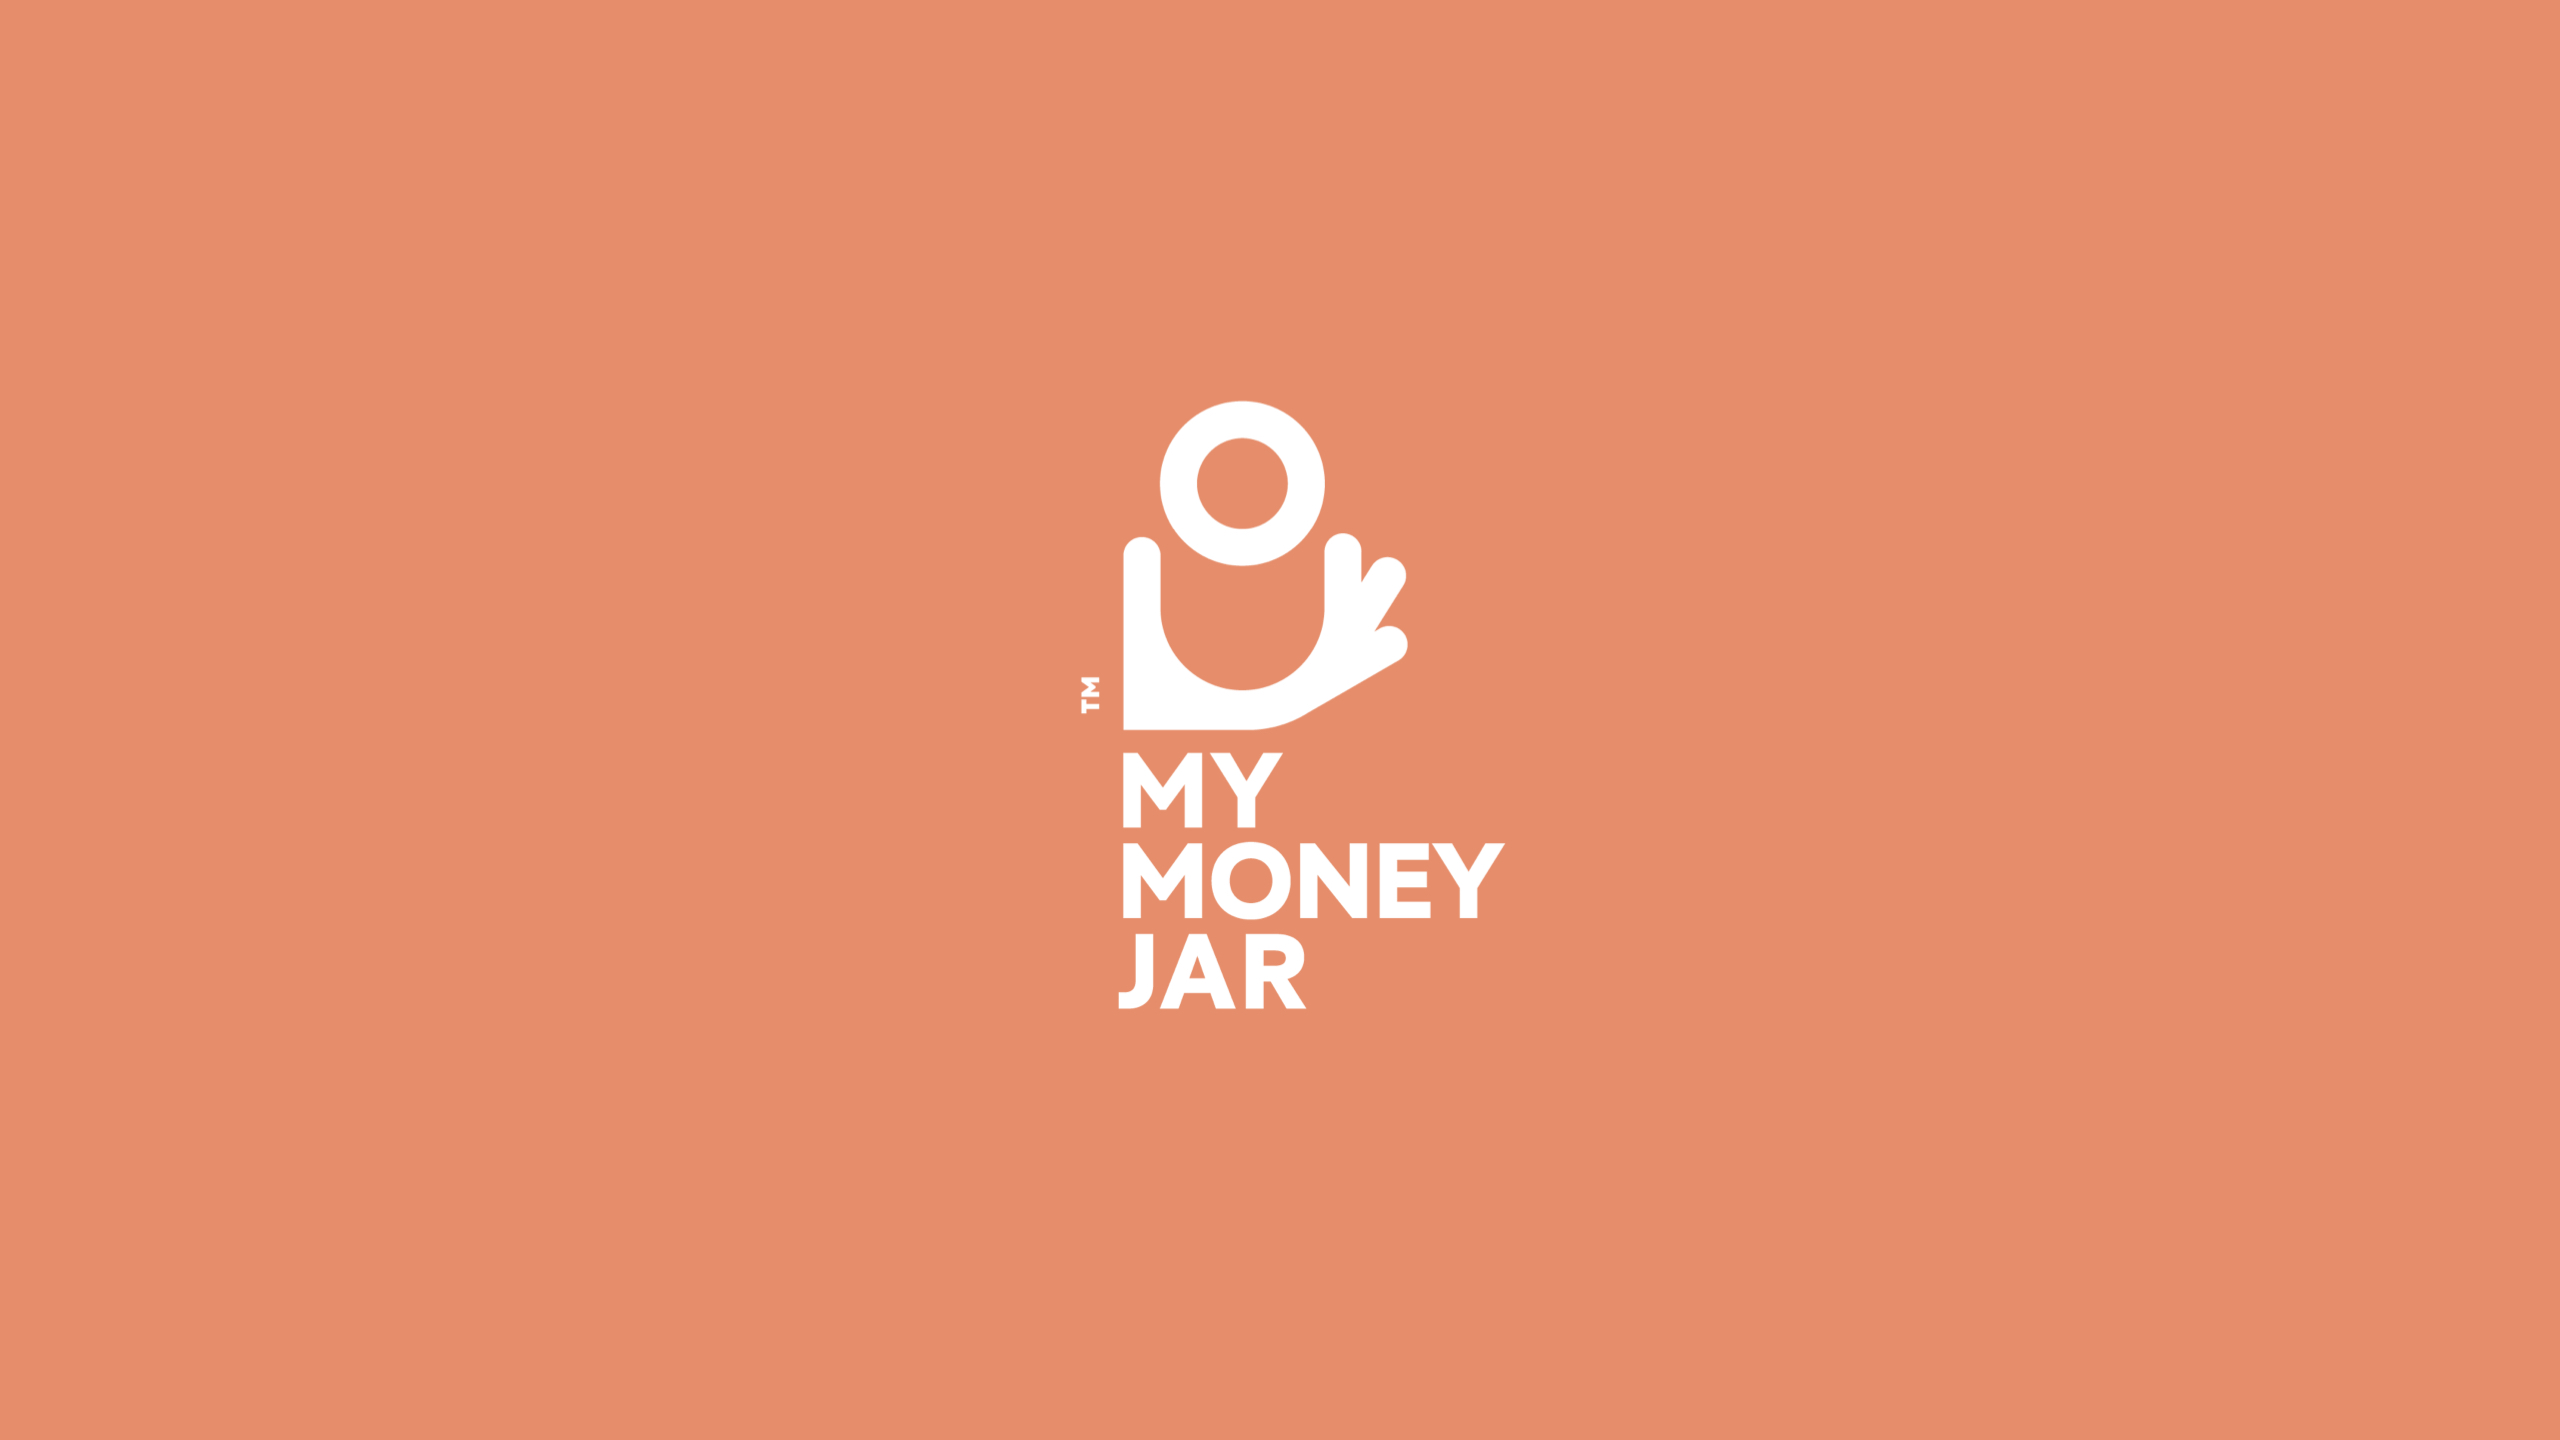 Cover image: My Money Jar